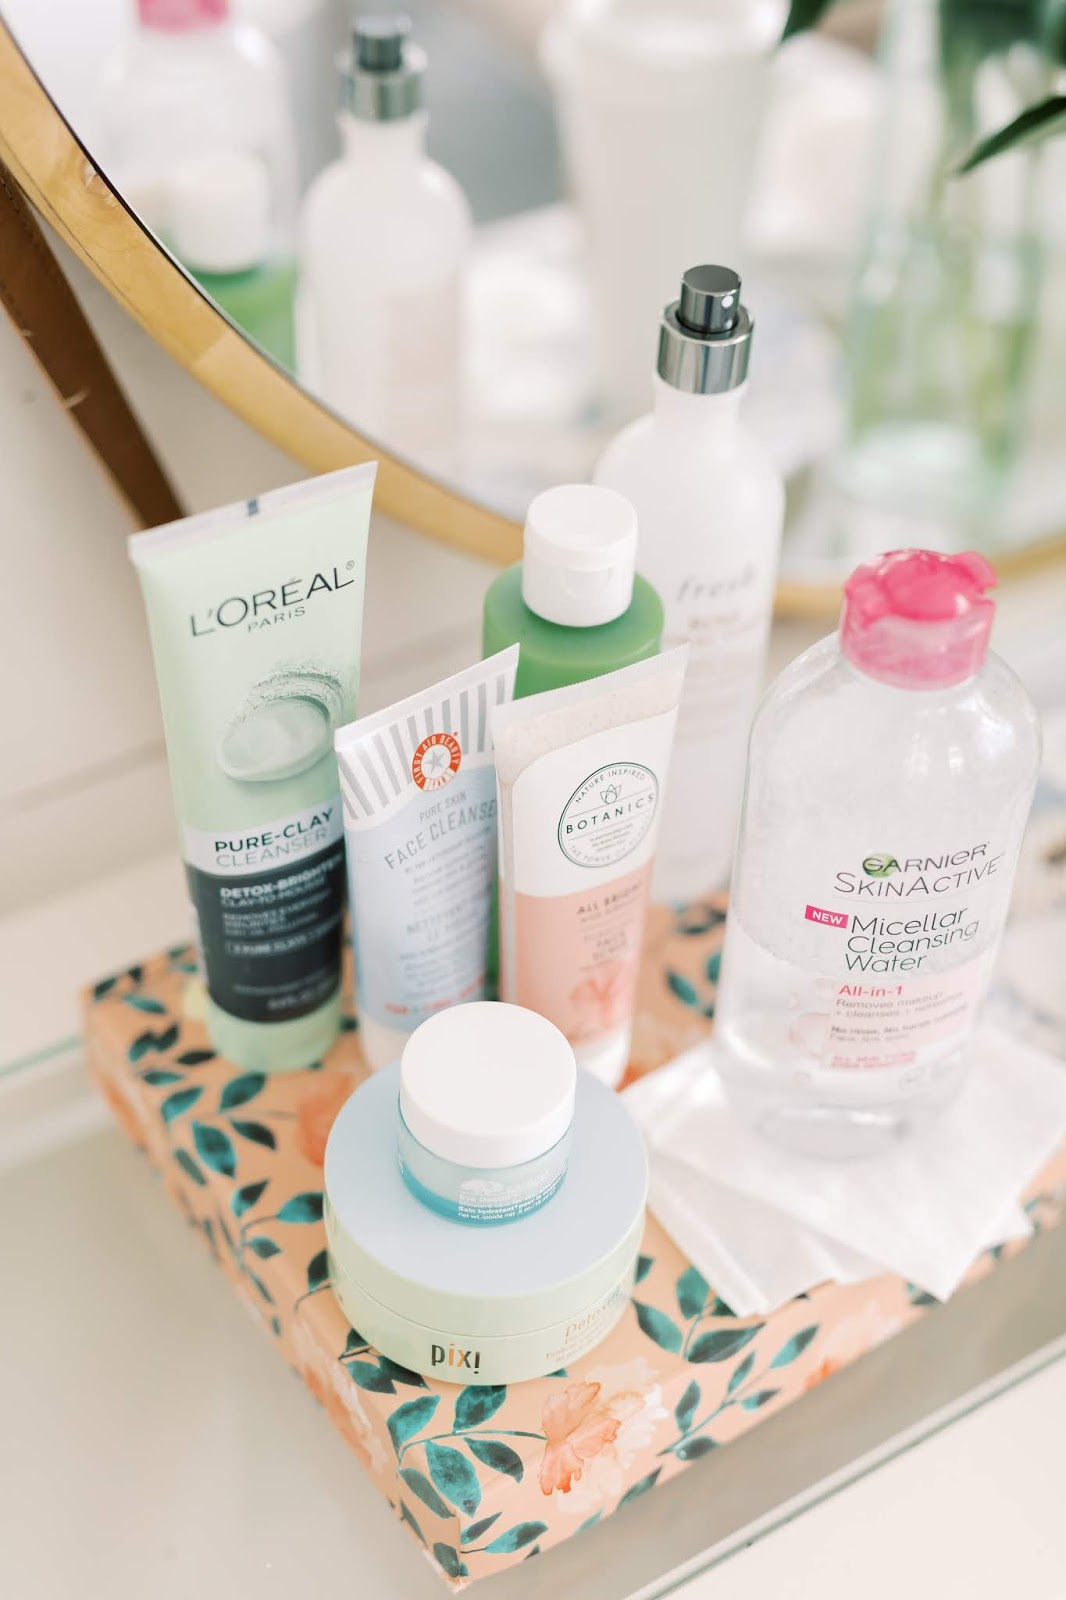 The Top 5 Skincare Tips I Wish I Could Tell My Younger Self. Affordable by Amanda, Tampa beauty blogger.